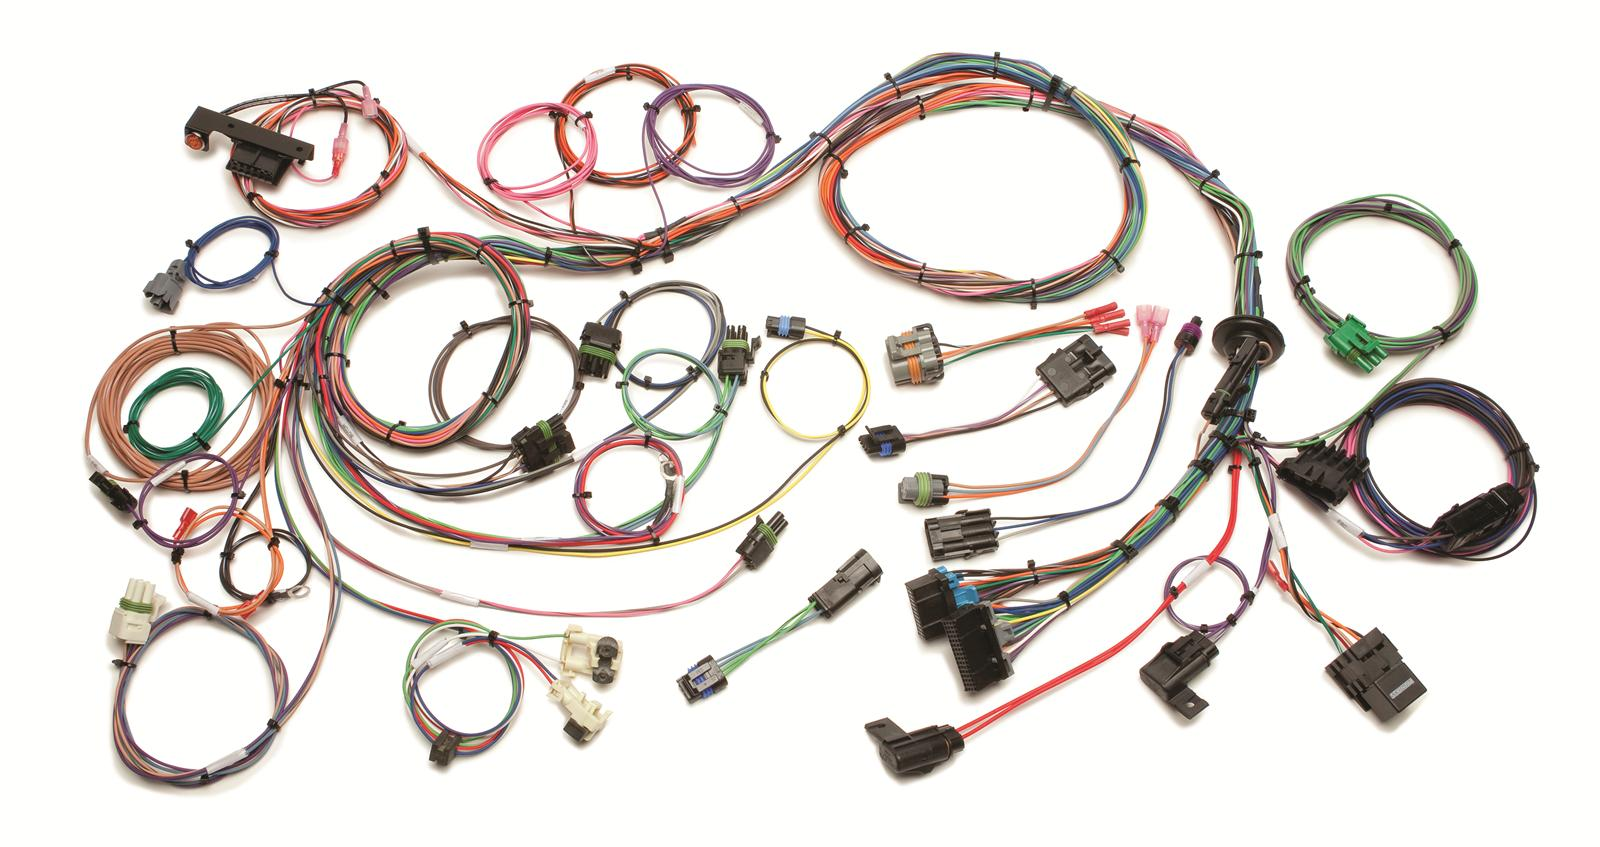 hight resolution of painless performance fuel injection harnesses 60201 free shipping on orders over 99 at summit racing